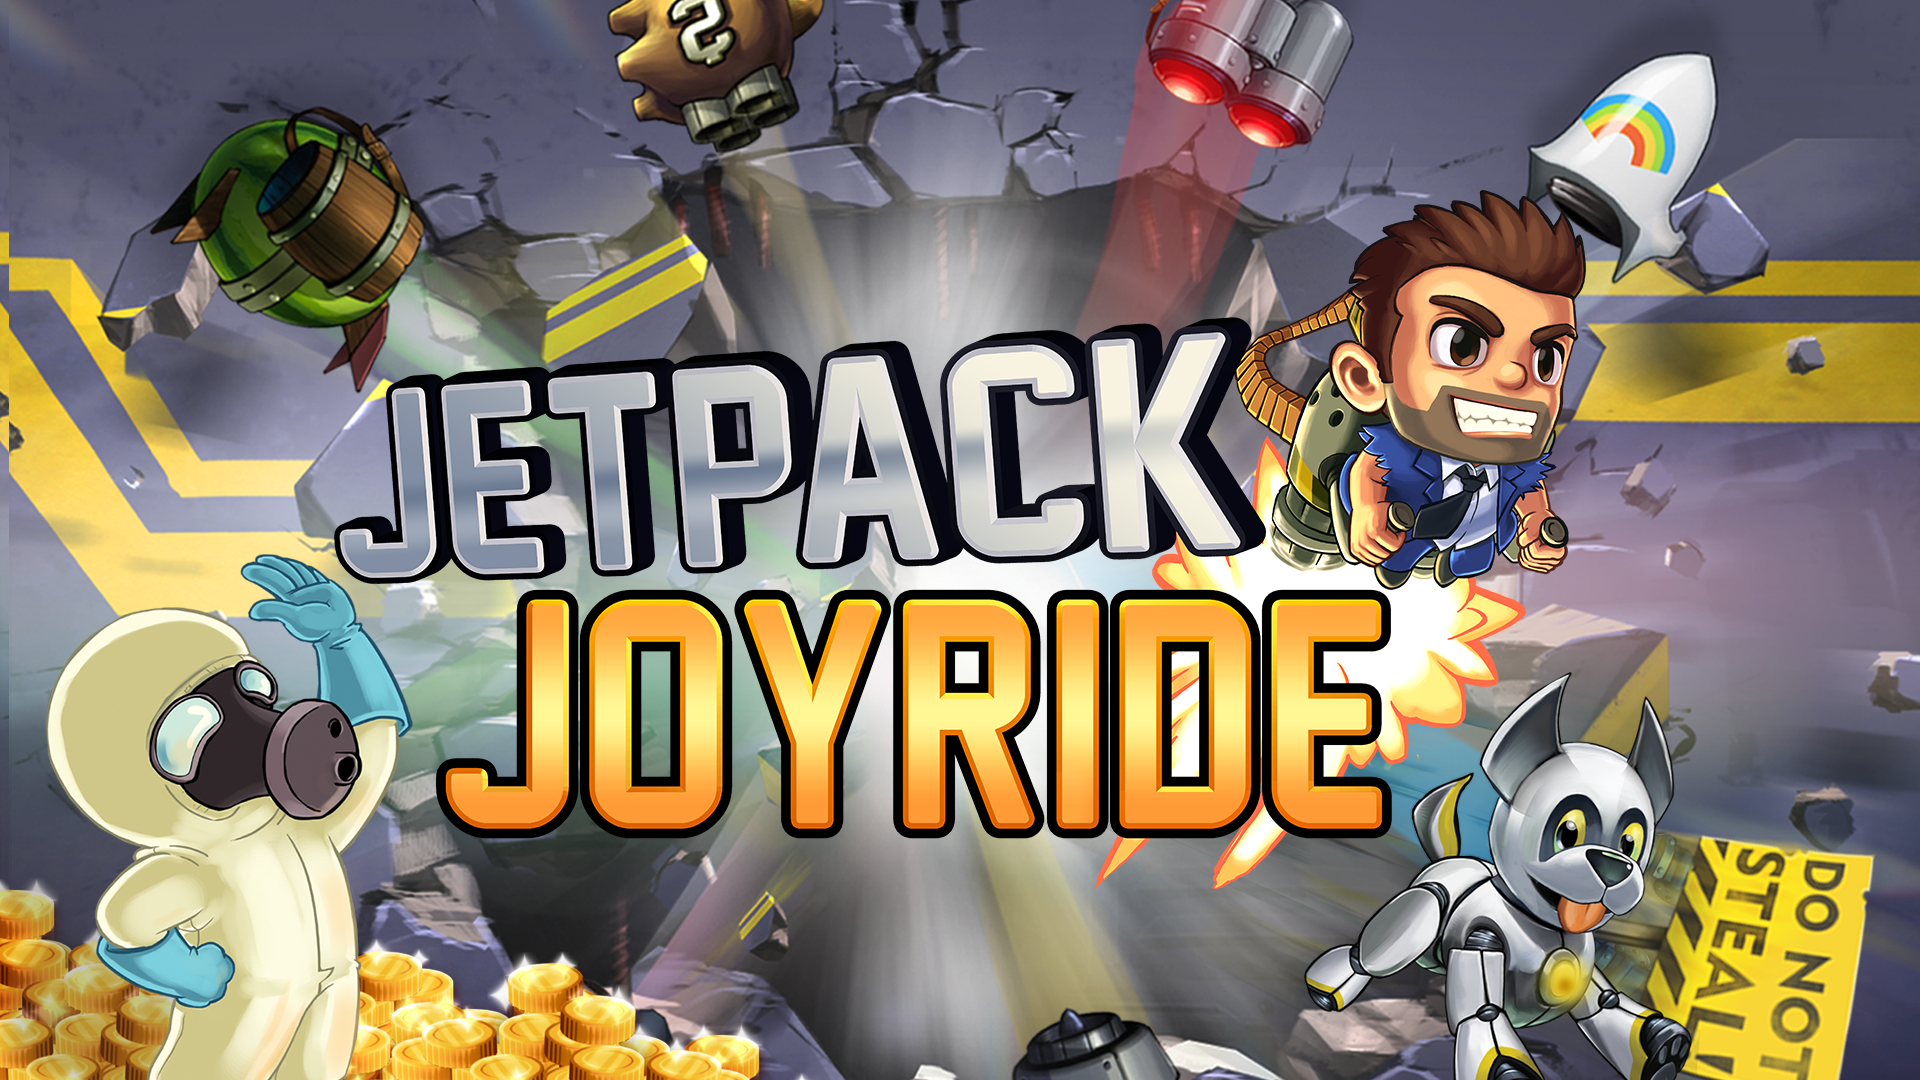 jetpack joyride without internet